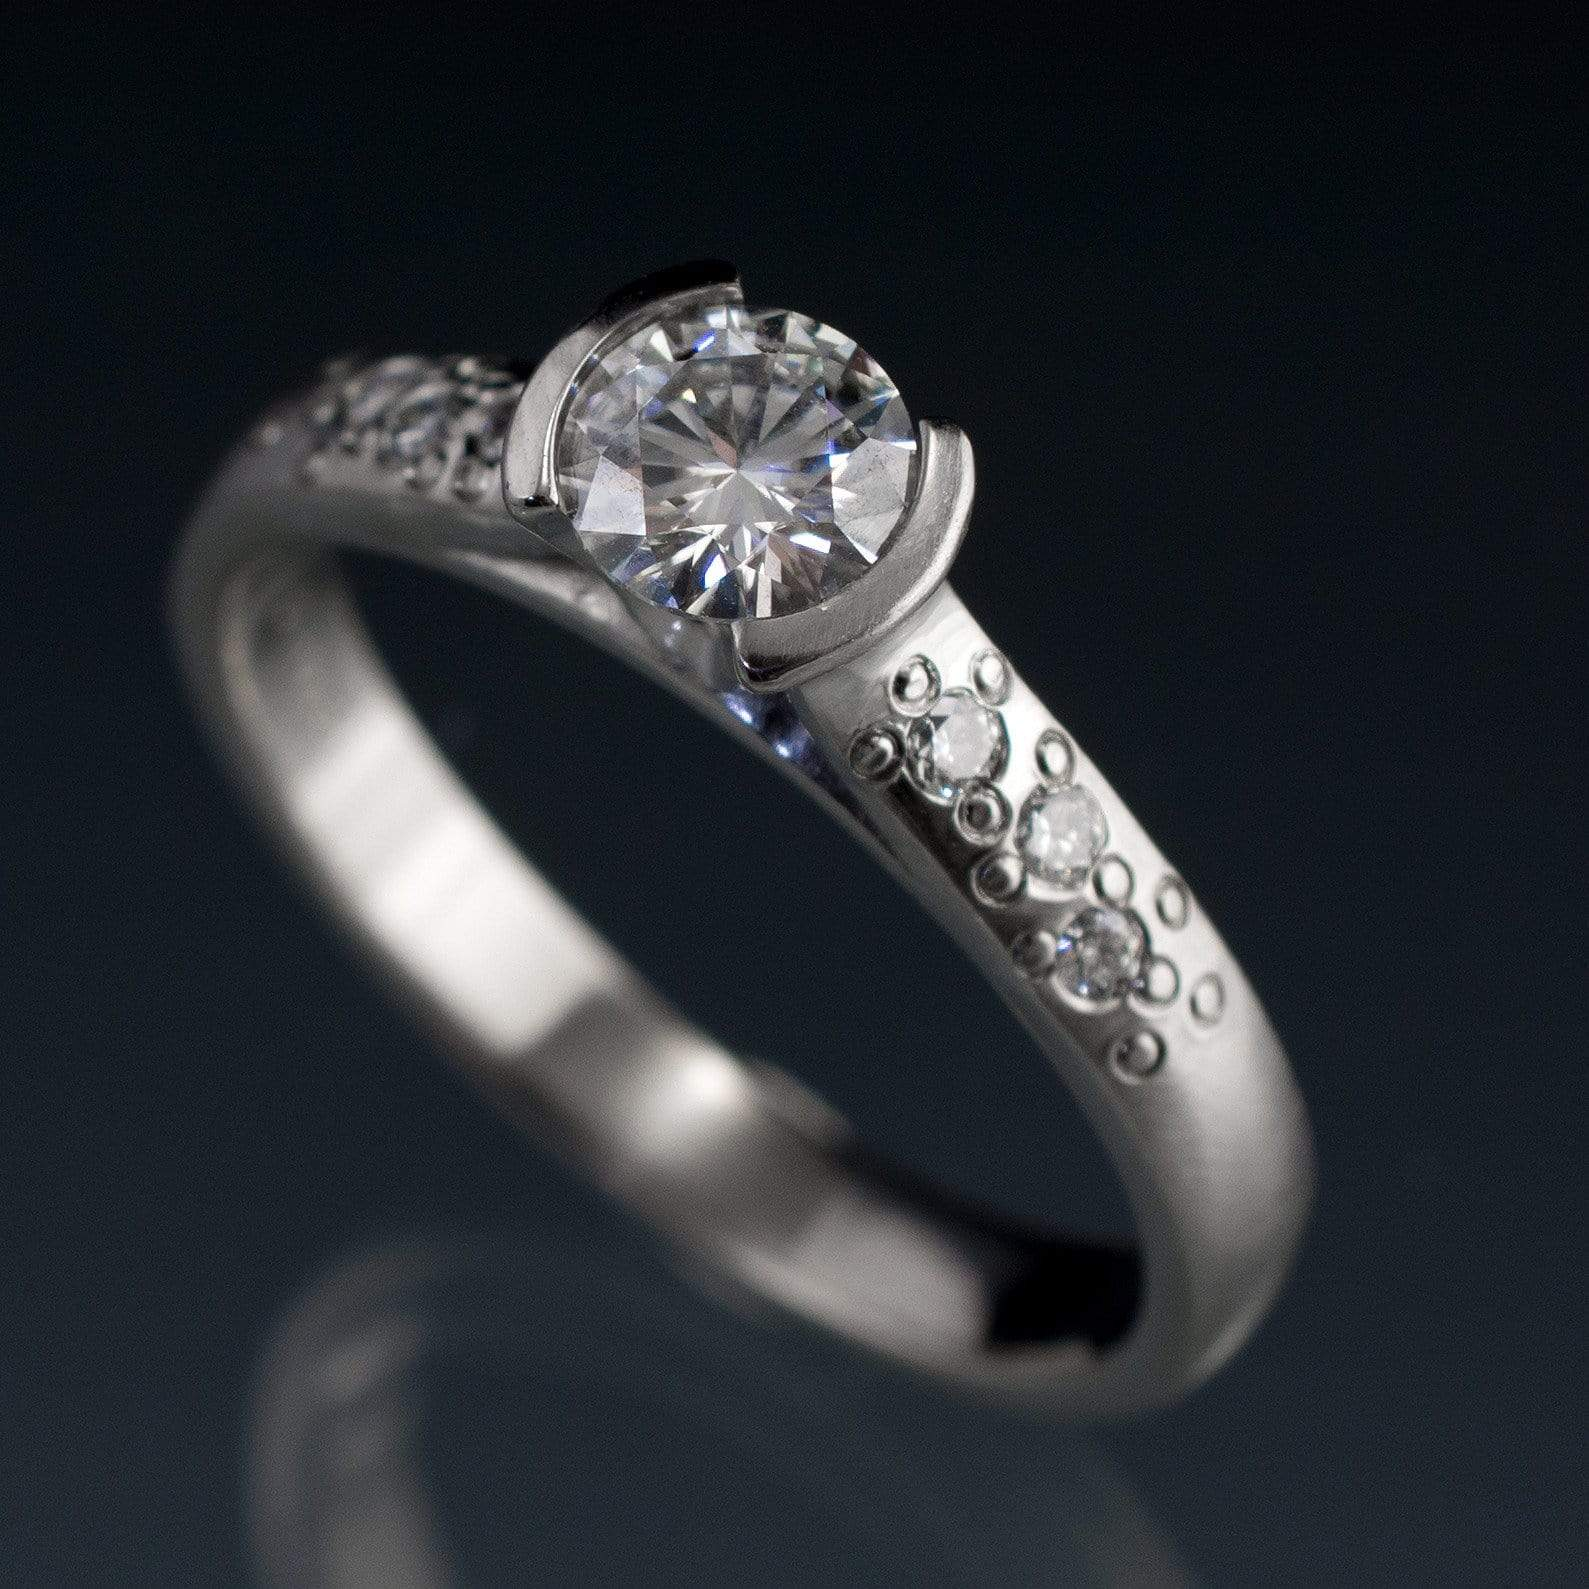 Moissanite Round Half Bezel Star Dust Engagement Ring - by Nodeform